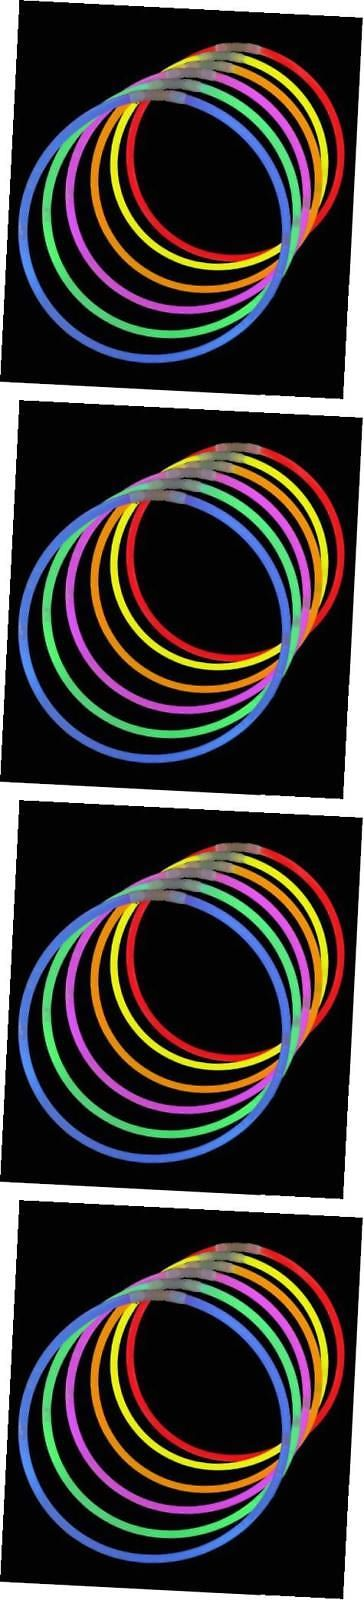 Glow Sticks 51019: 22 Brand Glow Stick Necklaces Assorted Mixed Colors (50 Necklaces) -> BUY IT NOW ONLY: $30.57 on eBay!